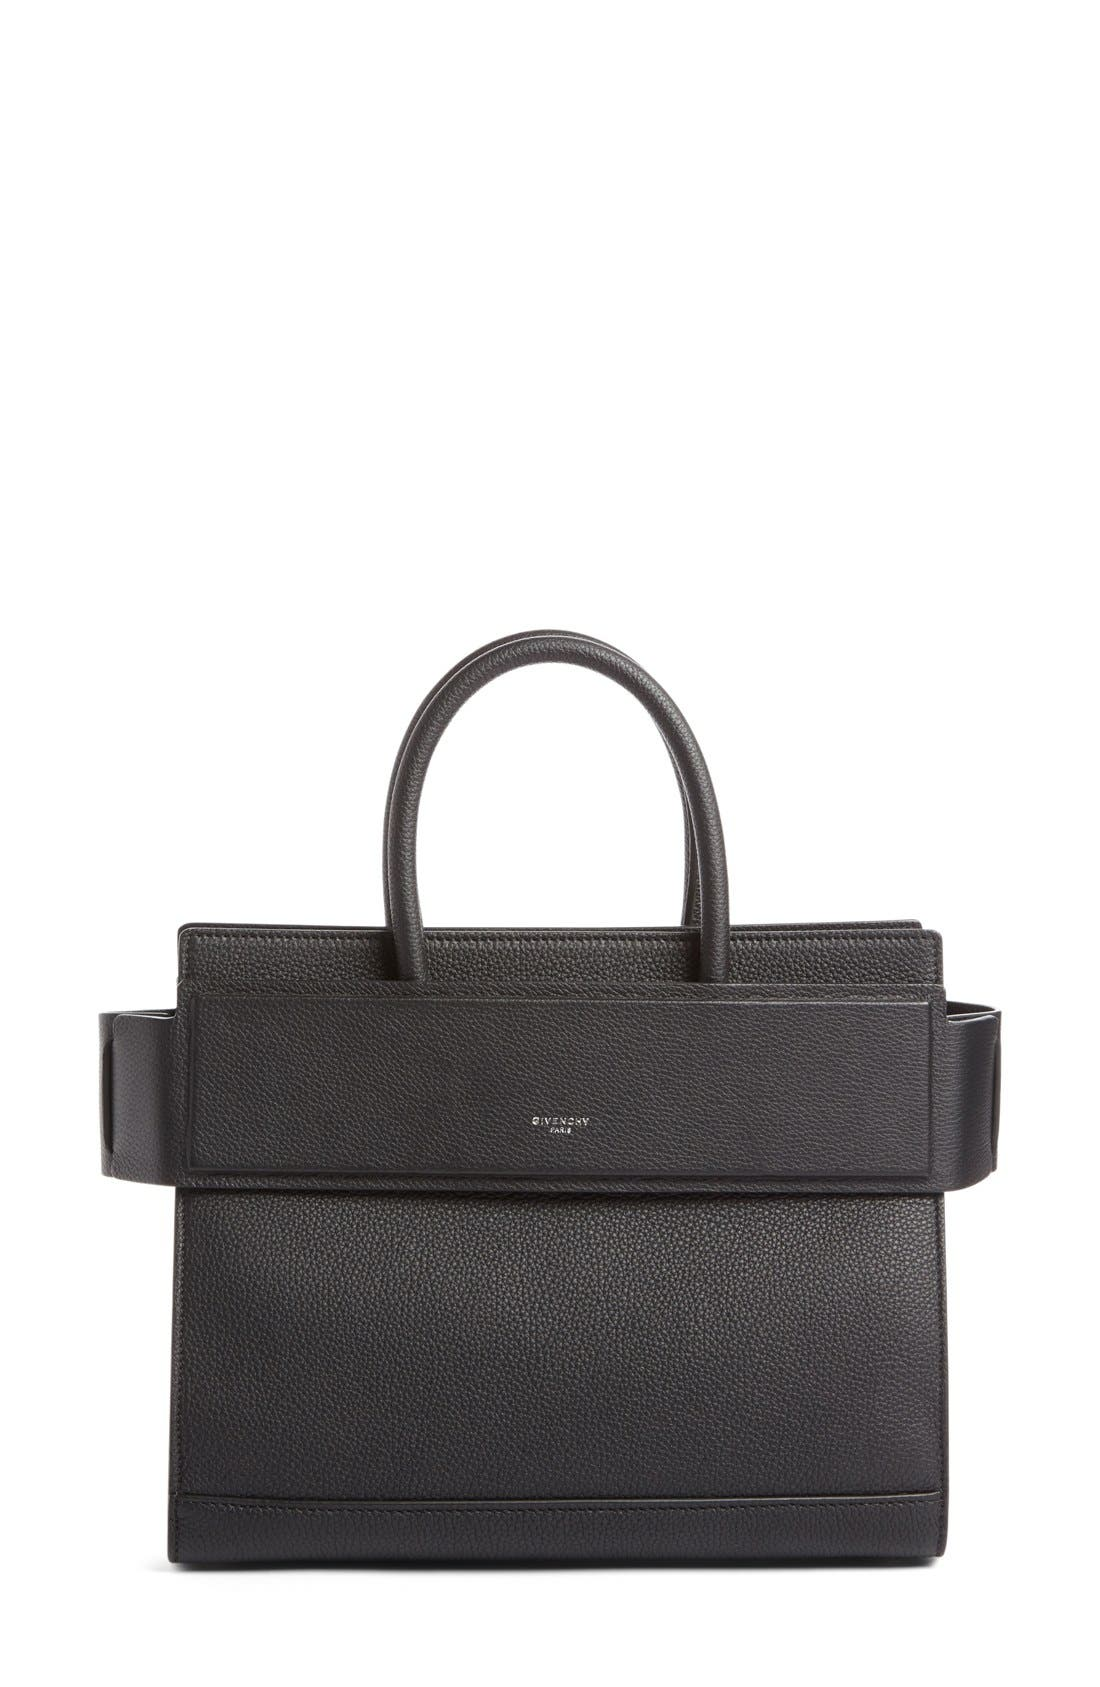 Main Image - Givenchy Small Horizon Grained Calfskin Leather Tote